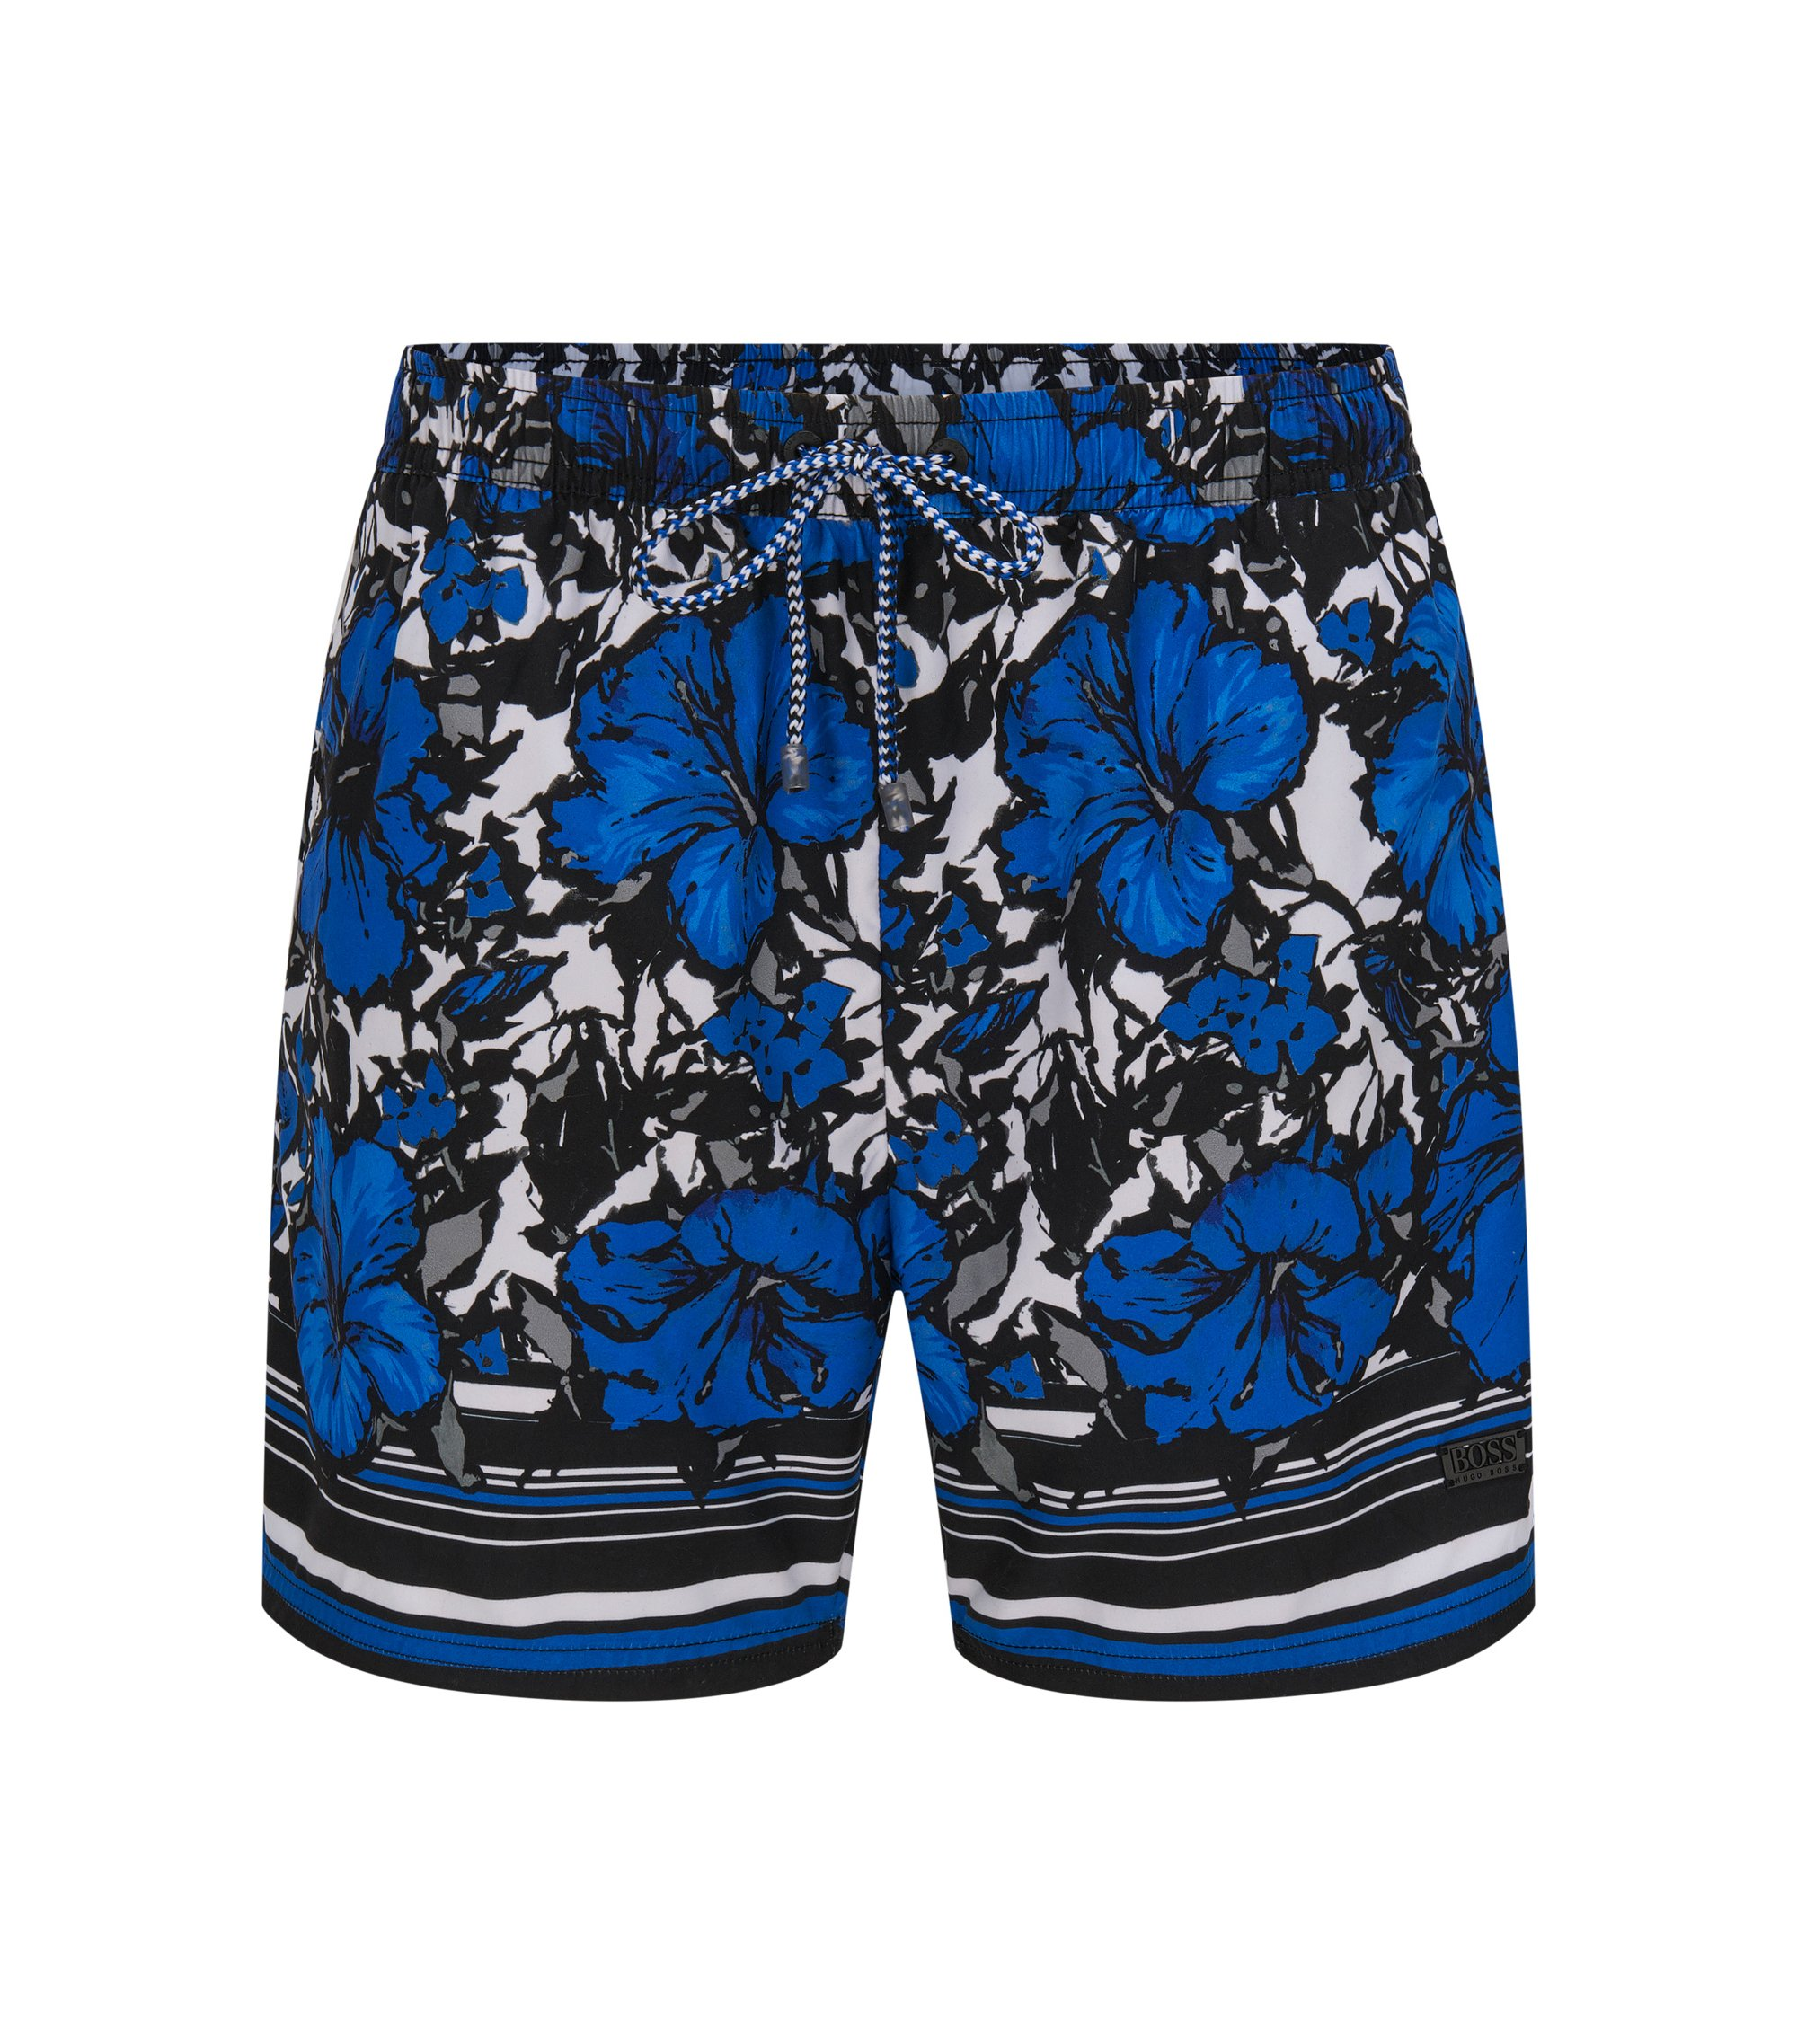 Quick Dry Patterned Swim Trunks | Piranha, Open Blue